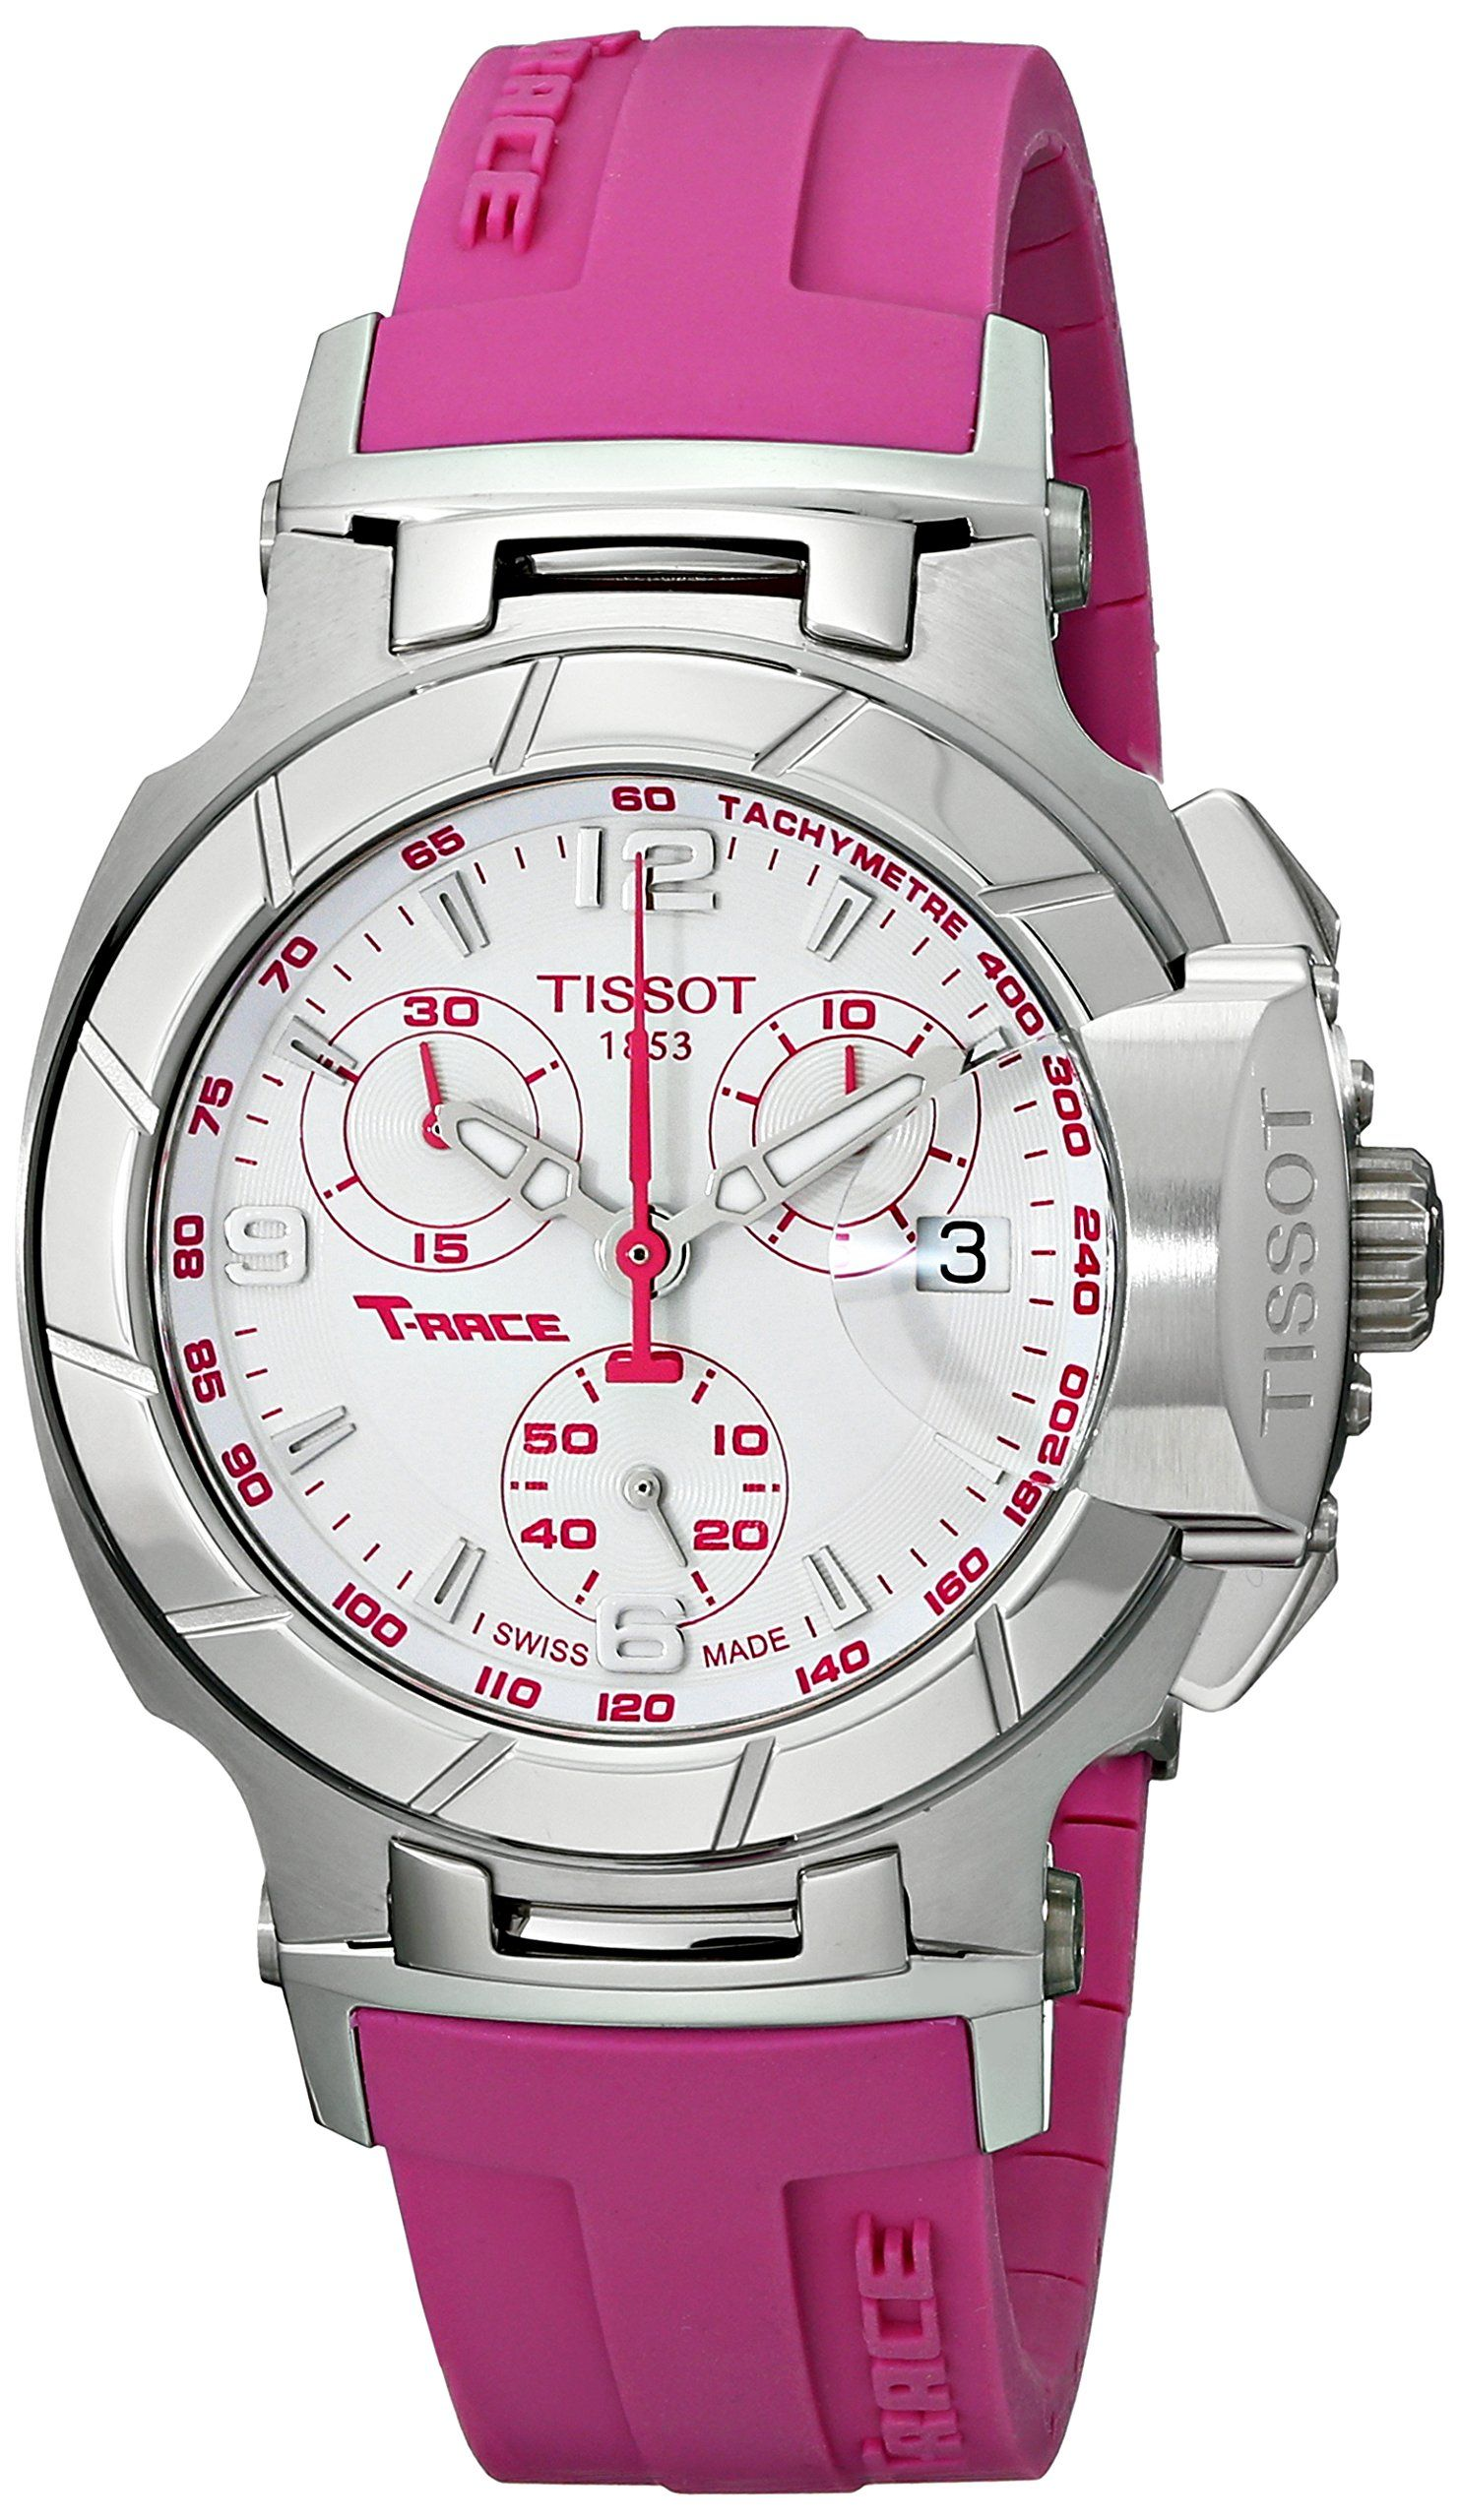 629fbf940a34 Tissot Women s T0482171701701 T-Race White Dial Pink Silicone Strap Watch.  Quartz movement. Saphire crystal. Case diameter  36 mm. Stainless steel  case.